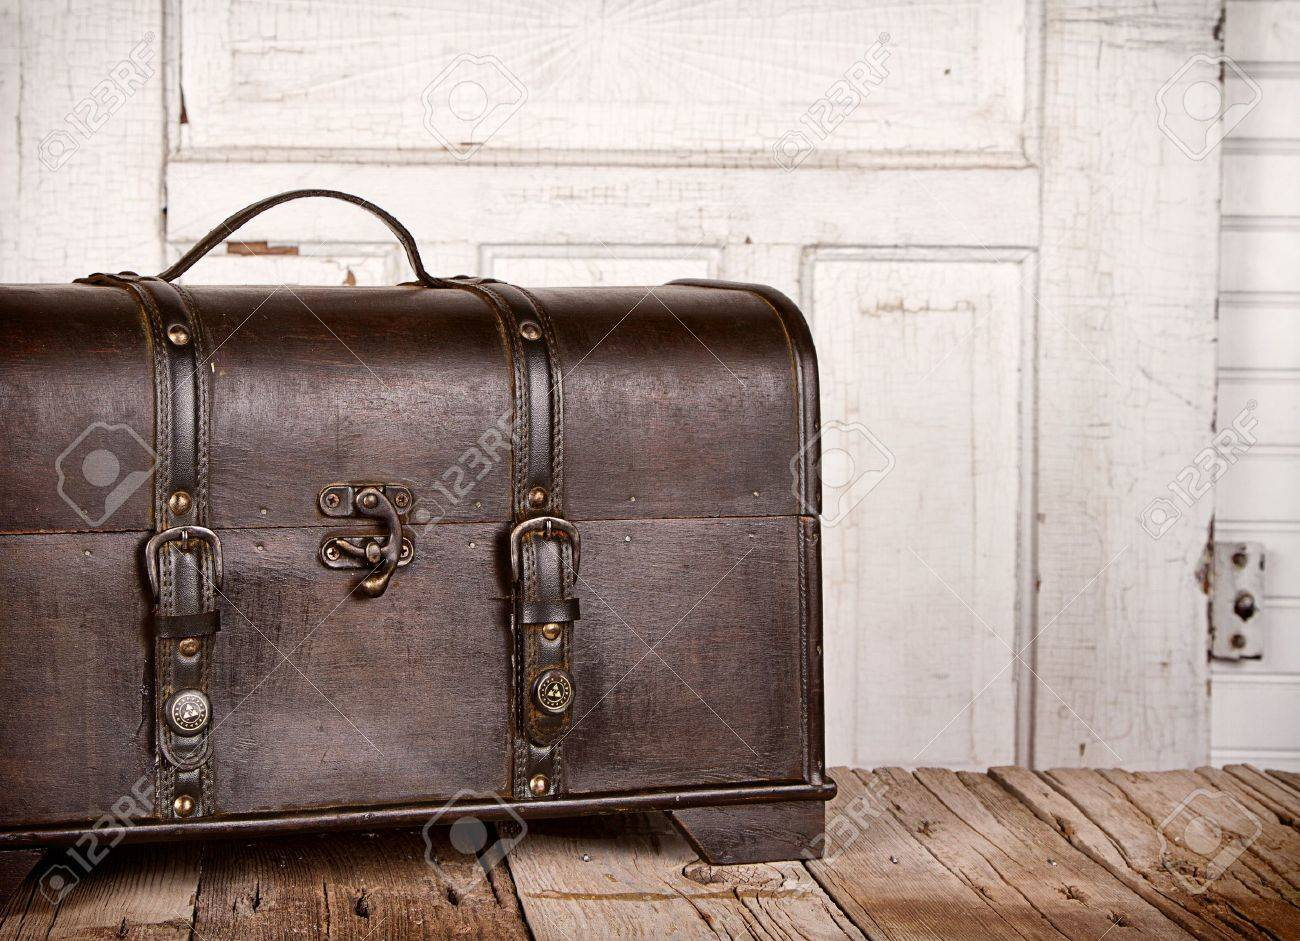 Wooden trunk or chest on an antique wooden backgrounds Stock Photo - 16758176